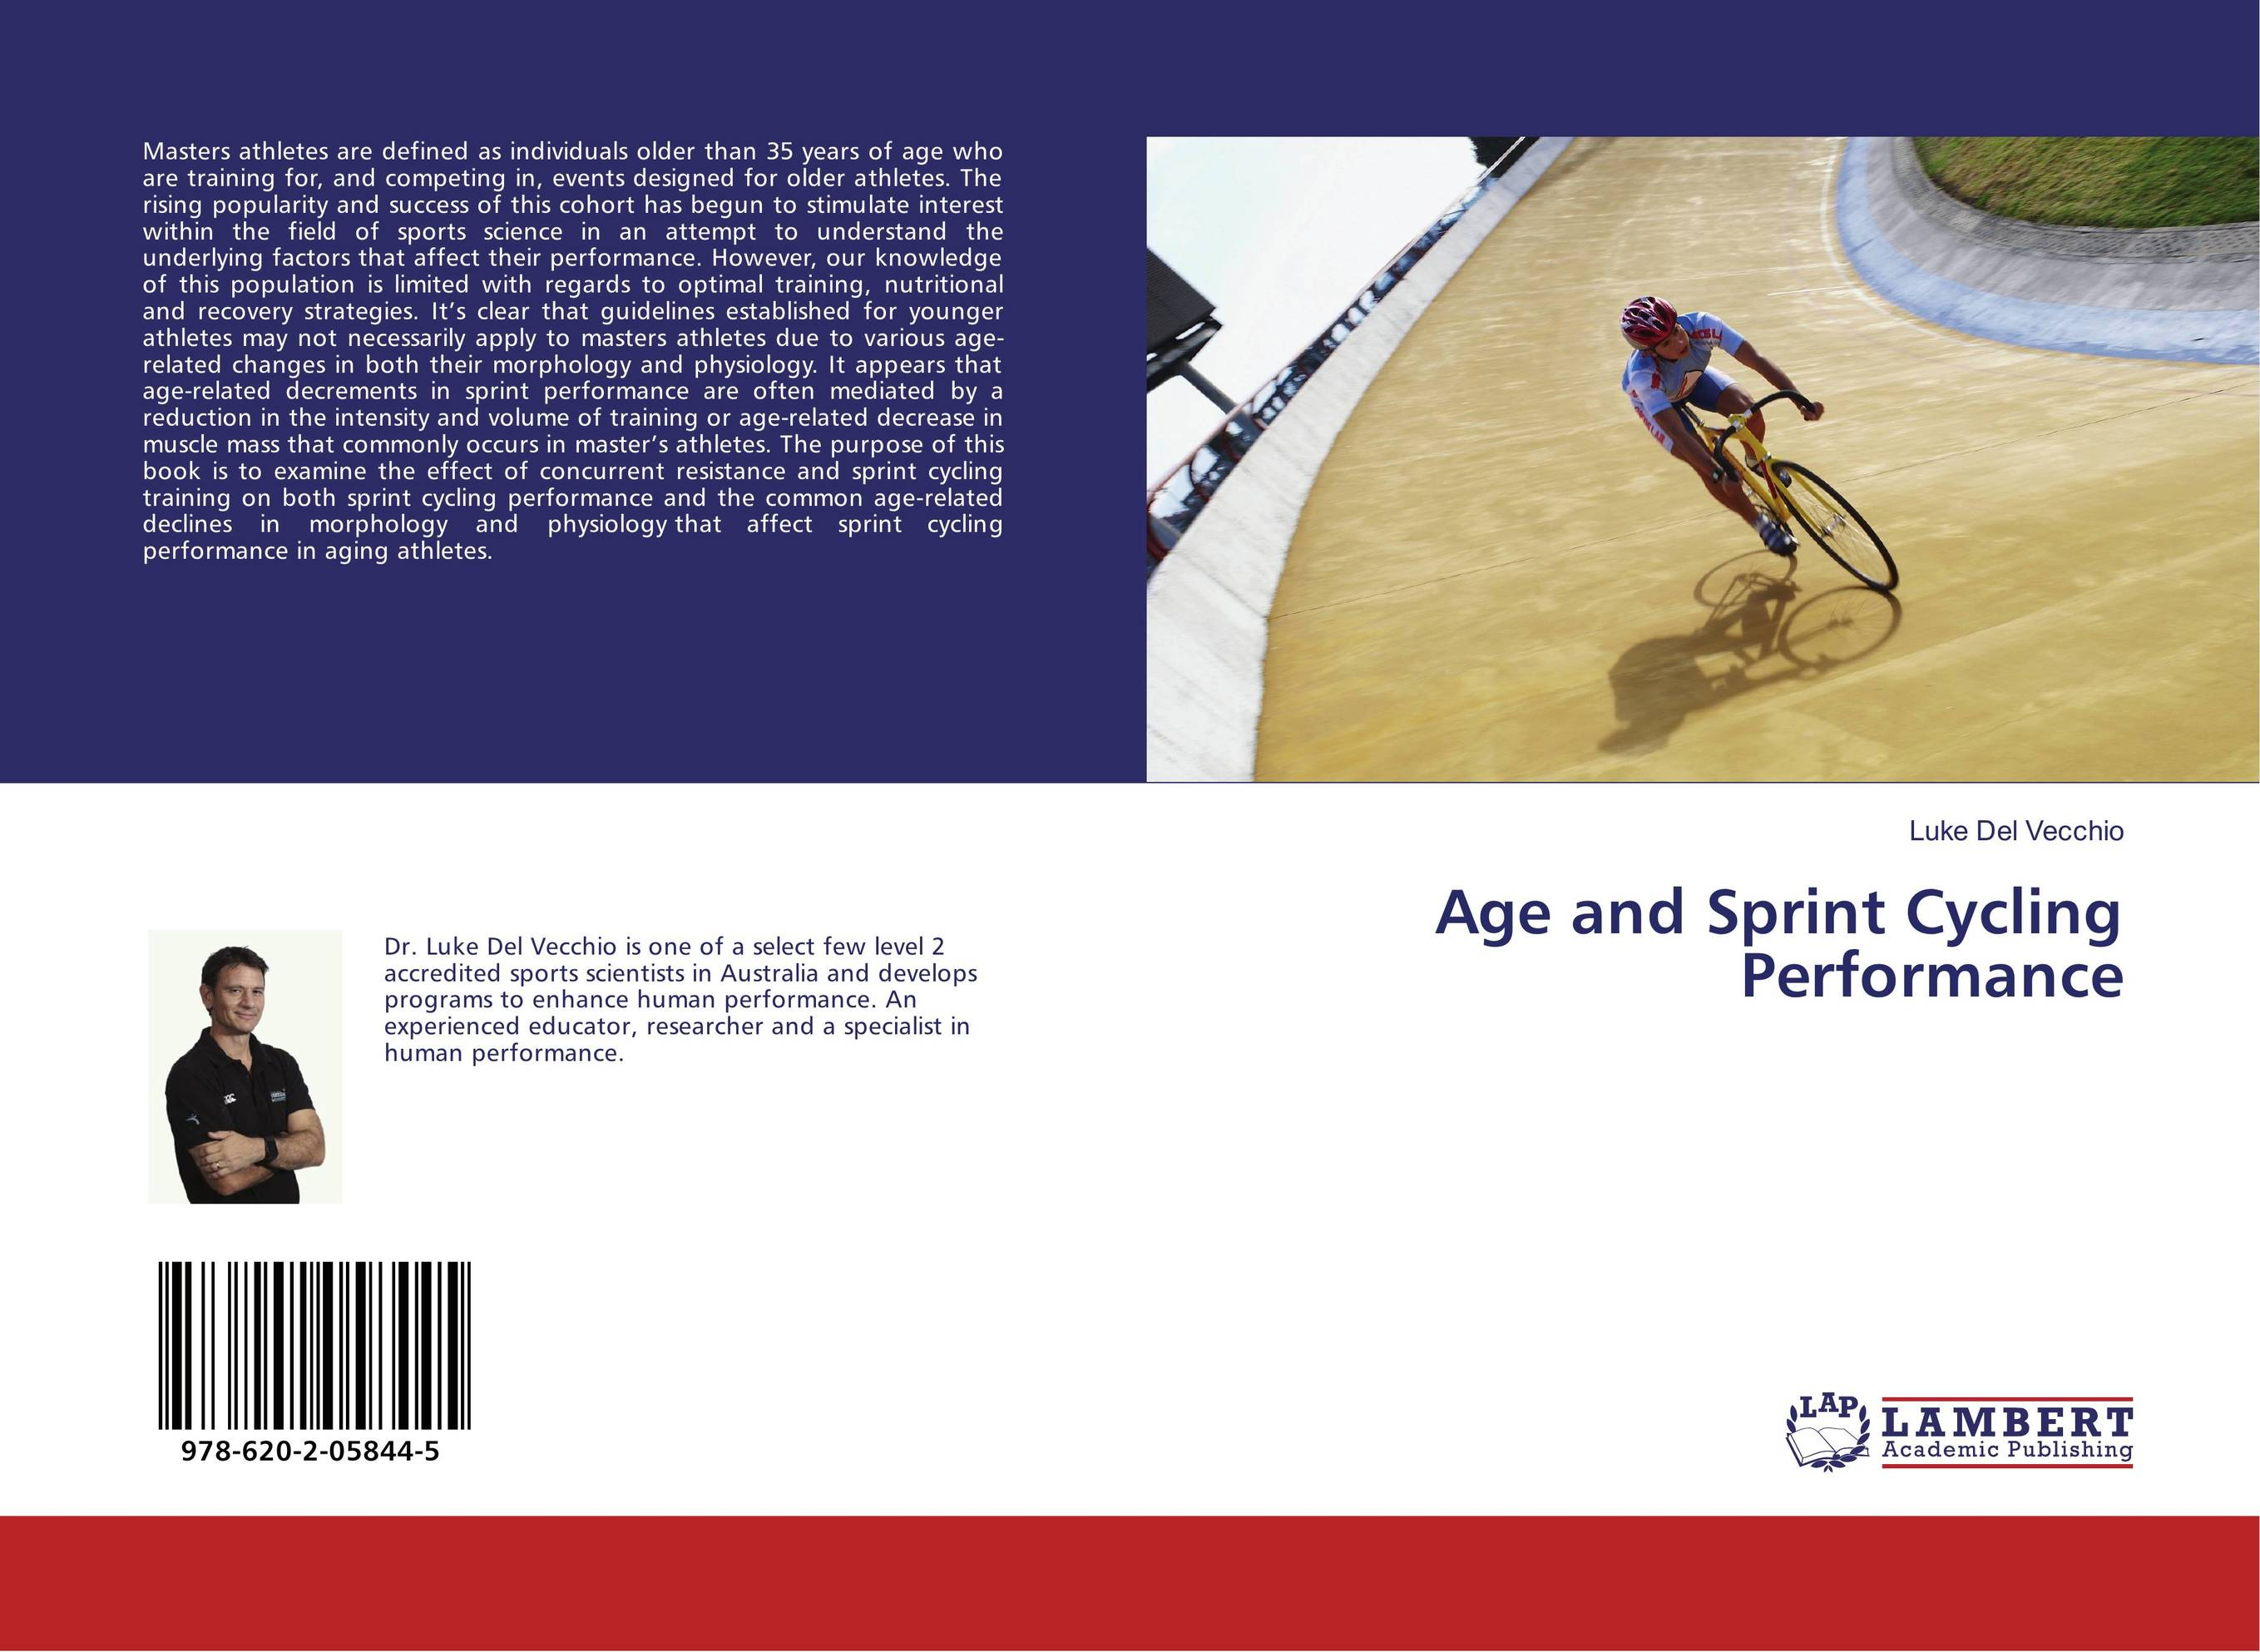 sprint performance The purpose of this meta-analysis was to attempt to gain a clear picture of the magnitude of sprint performance improvements expected after chronic plyometric training (pt) and to identify.